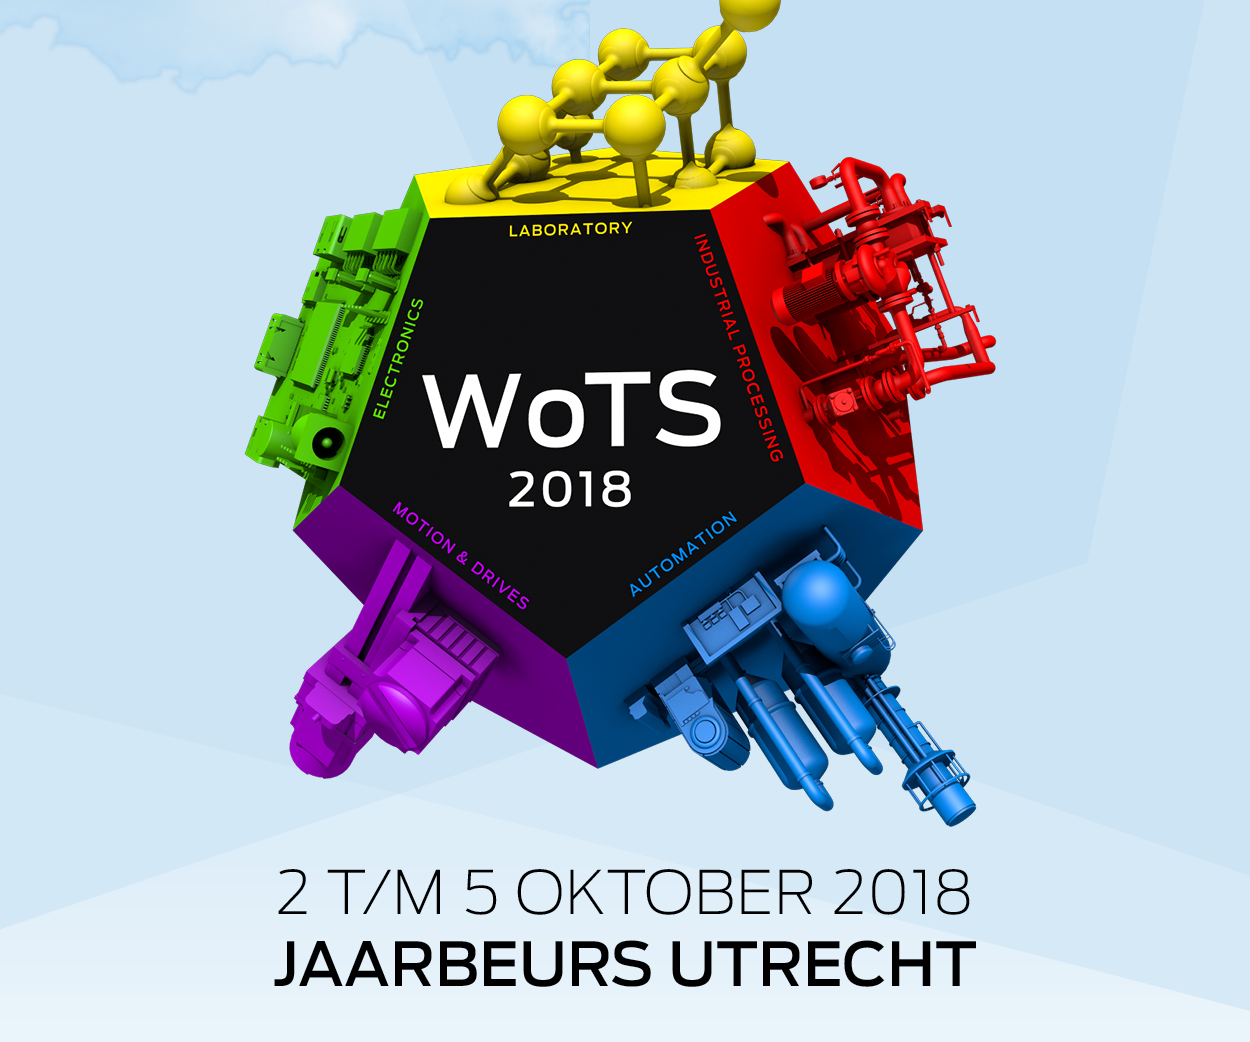 Russell Finex presents its separation solutions at WoTS 2018